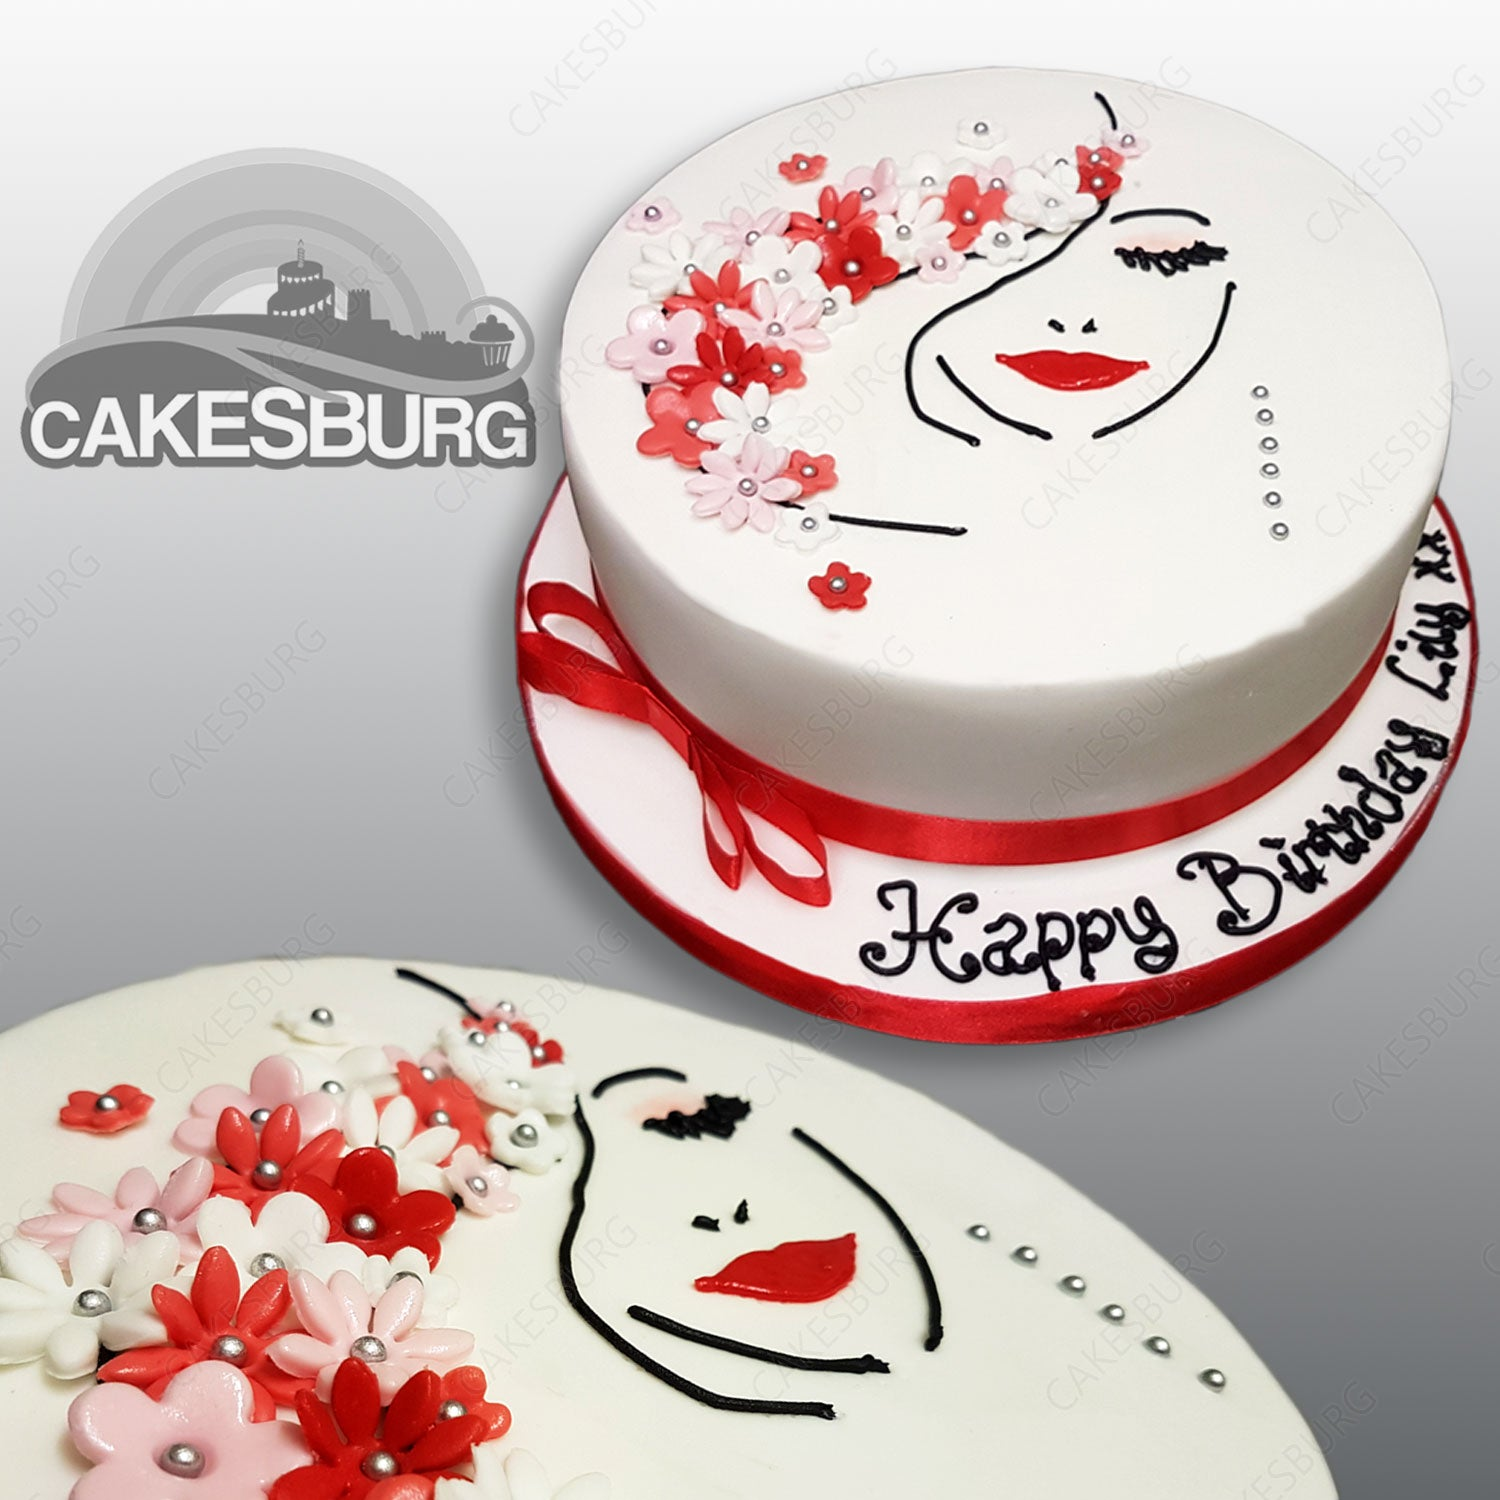 Miraculous Pretty Woman Cake Cakesburg Online Premium Cake Shop Funny Birthday Cards Online Alyptdamsfinfo